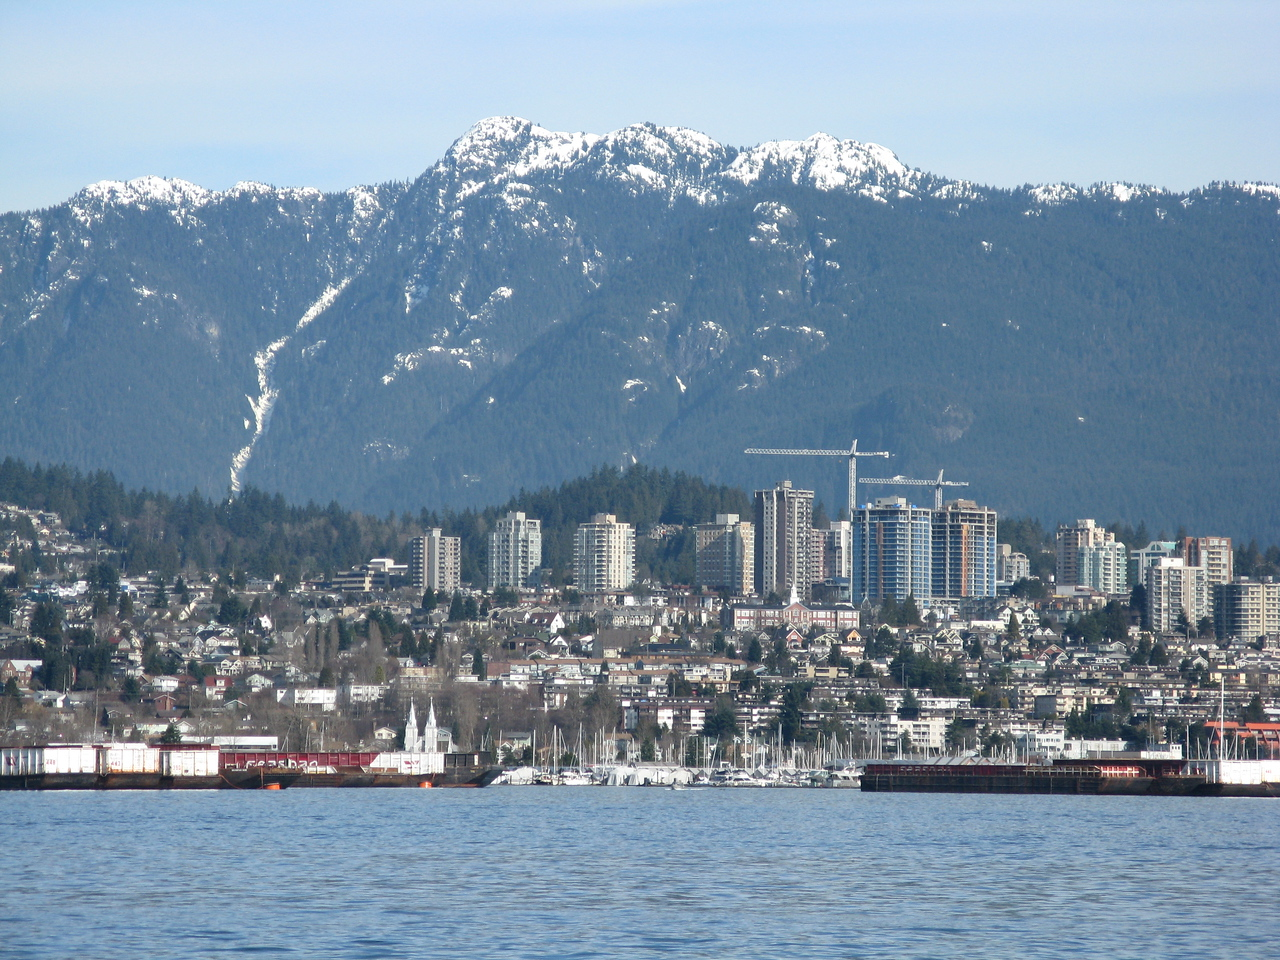 Looking across Burrard Inlet on the east side of Stanley Park to North Vancouver, a suburb framed by snow capped mountains.